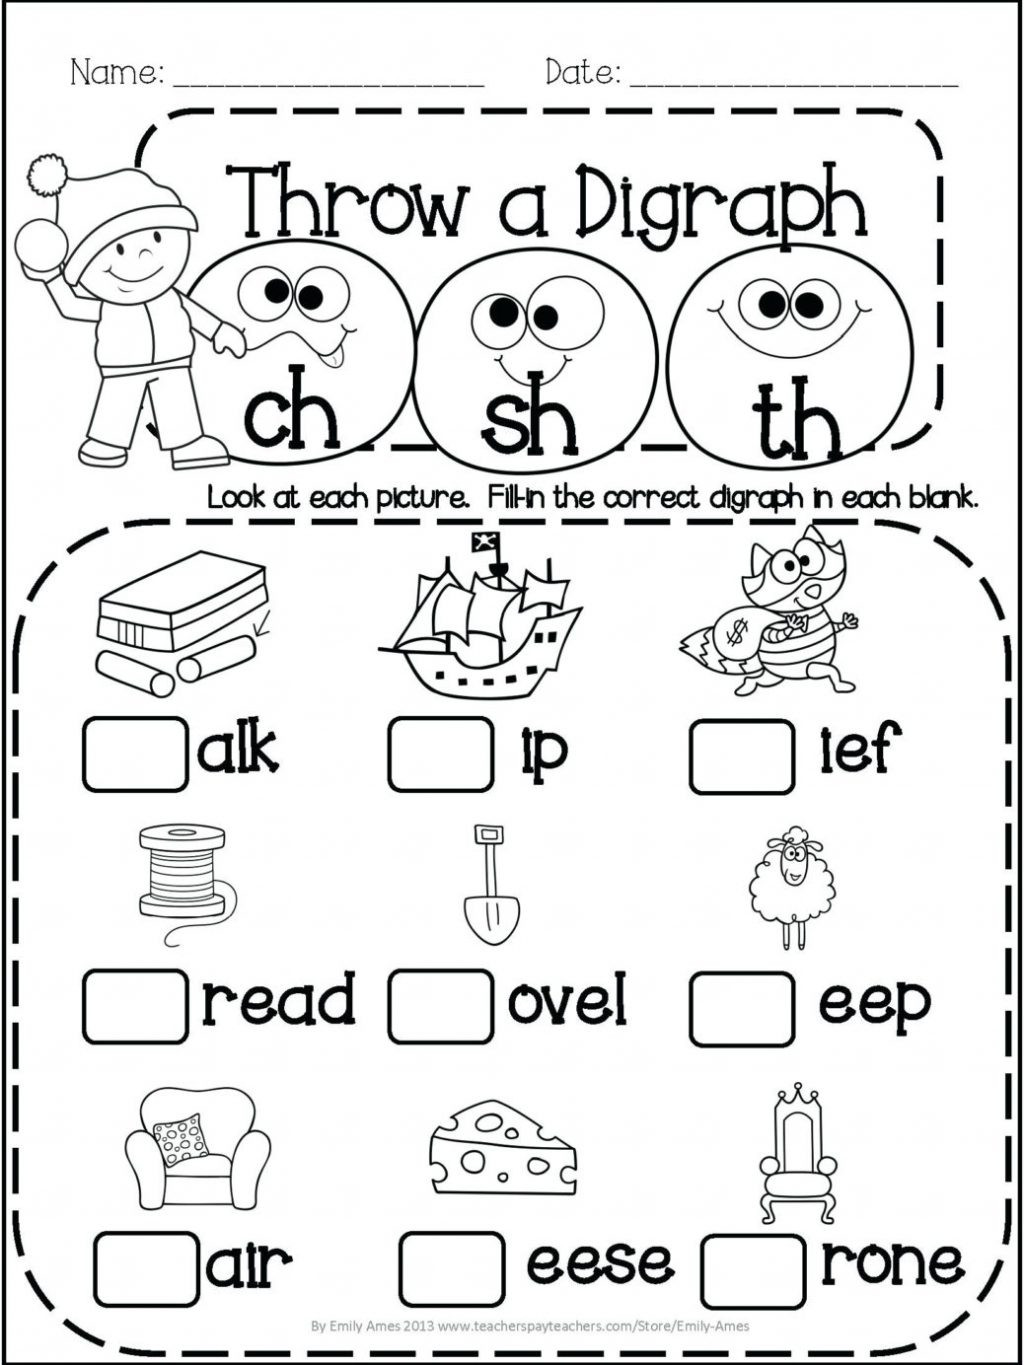 Phonics Worksheets 1st Grade Worksheet Awesome 1st Grade Phonicsksheets Image Ideas